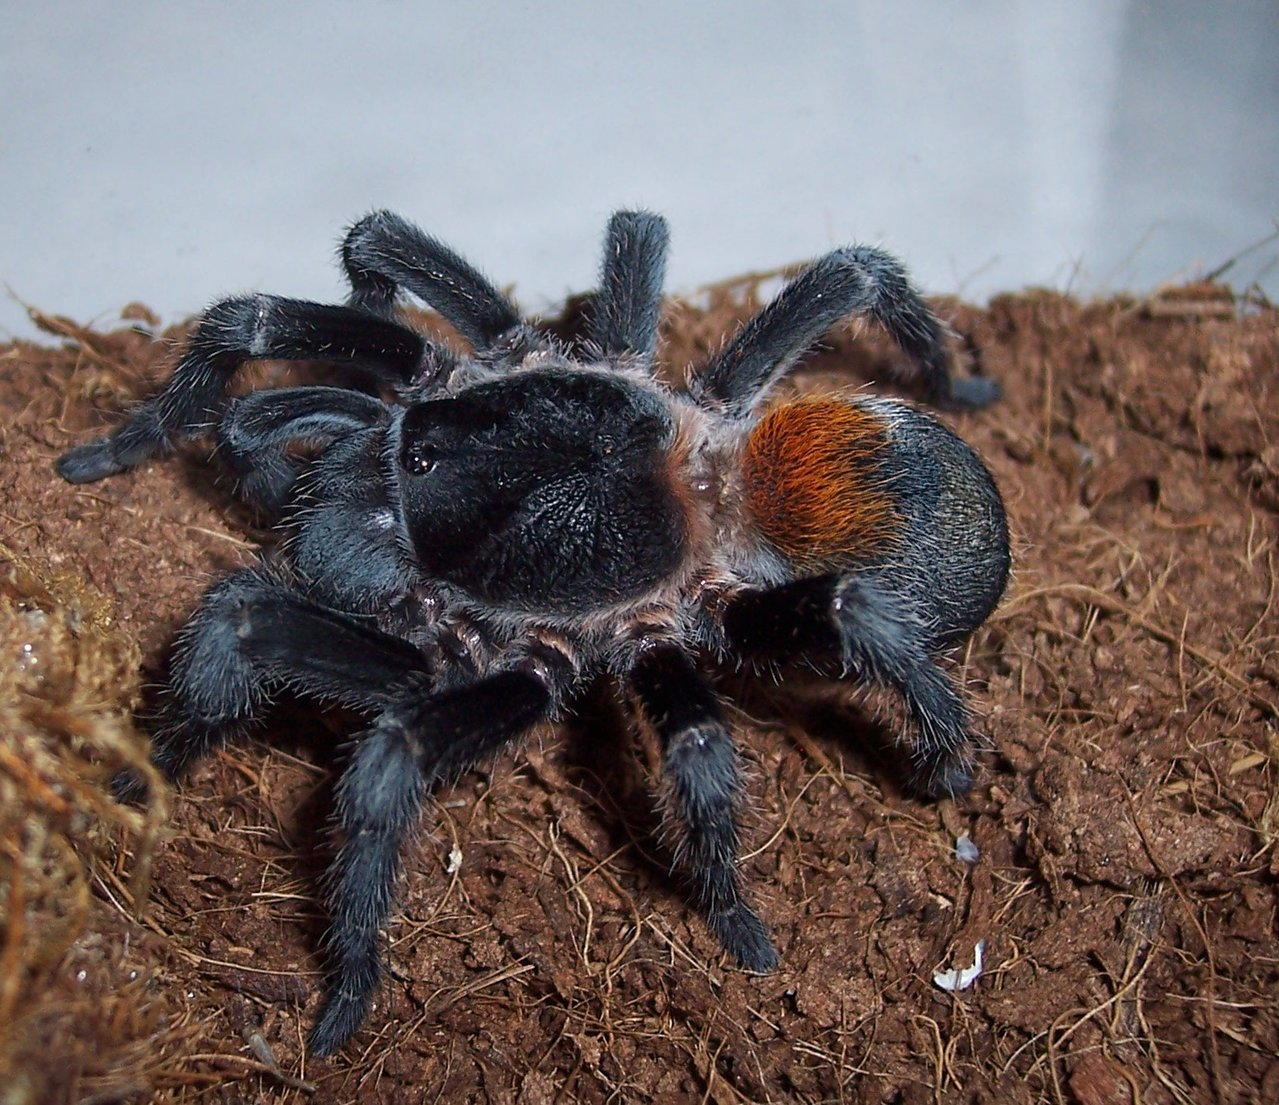 E. sp. Red, Adult Female eating, 1 of 2.